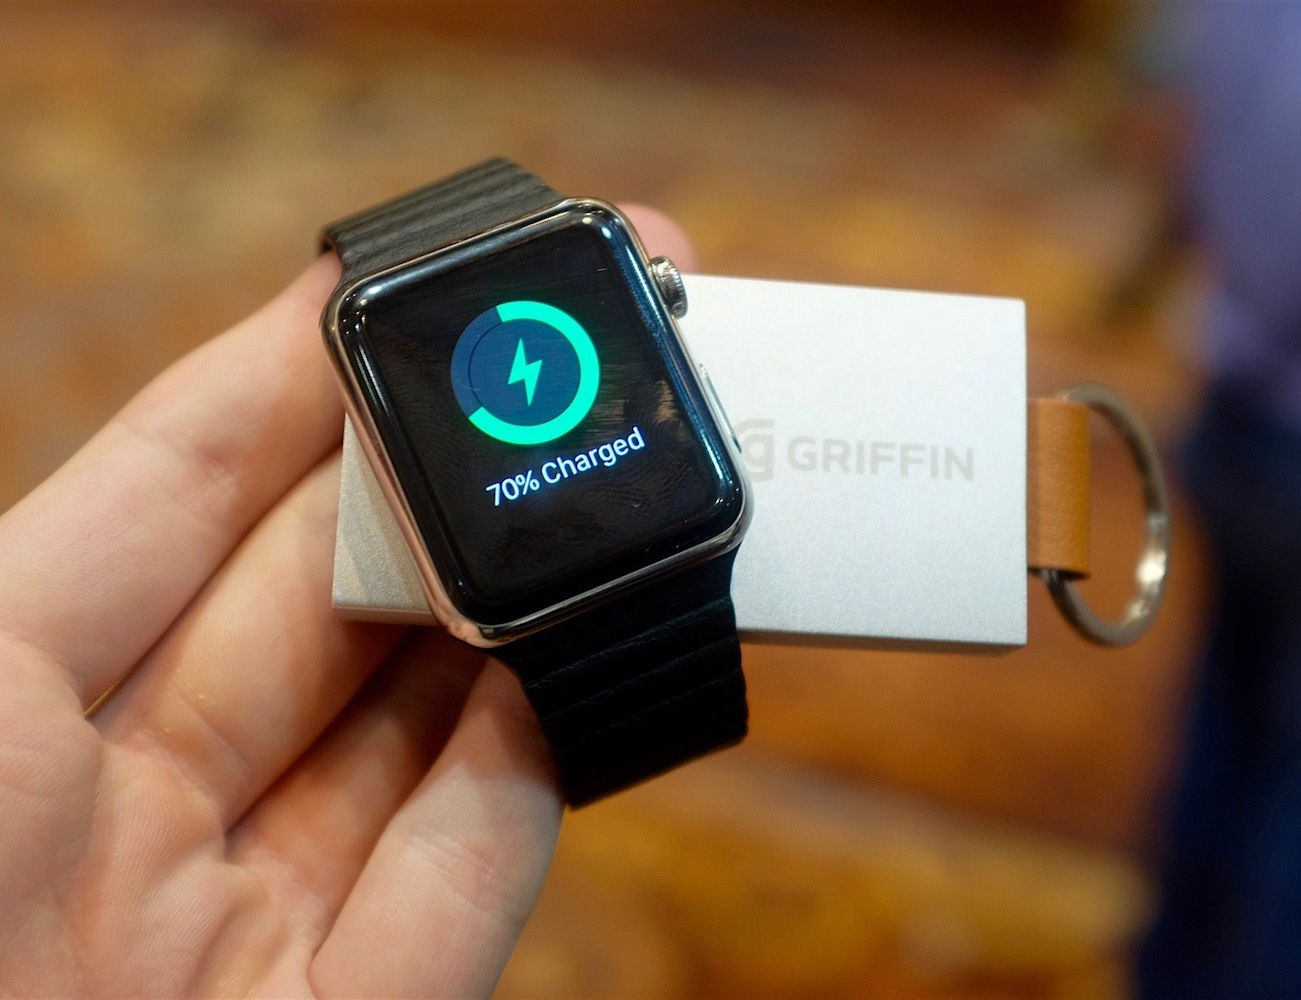 Travel Power Bank by Griffin – Keychain Sized External Battery For Apple Watch